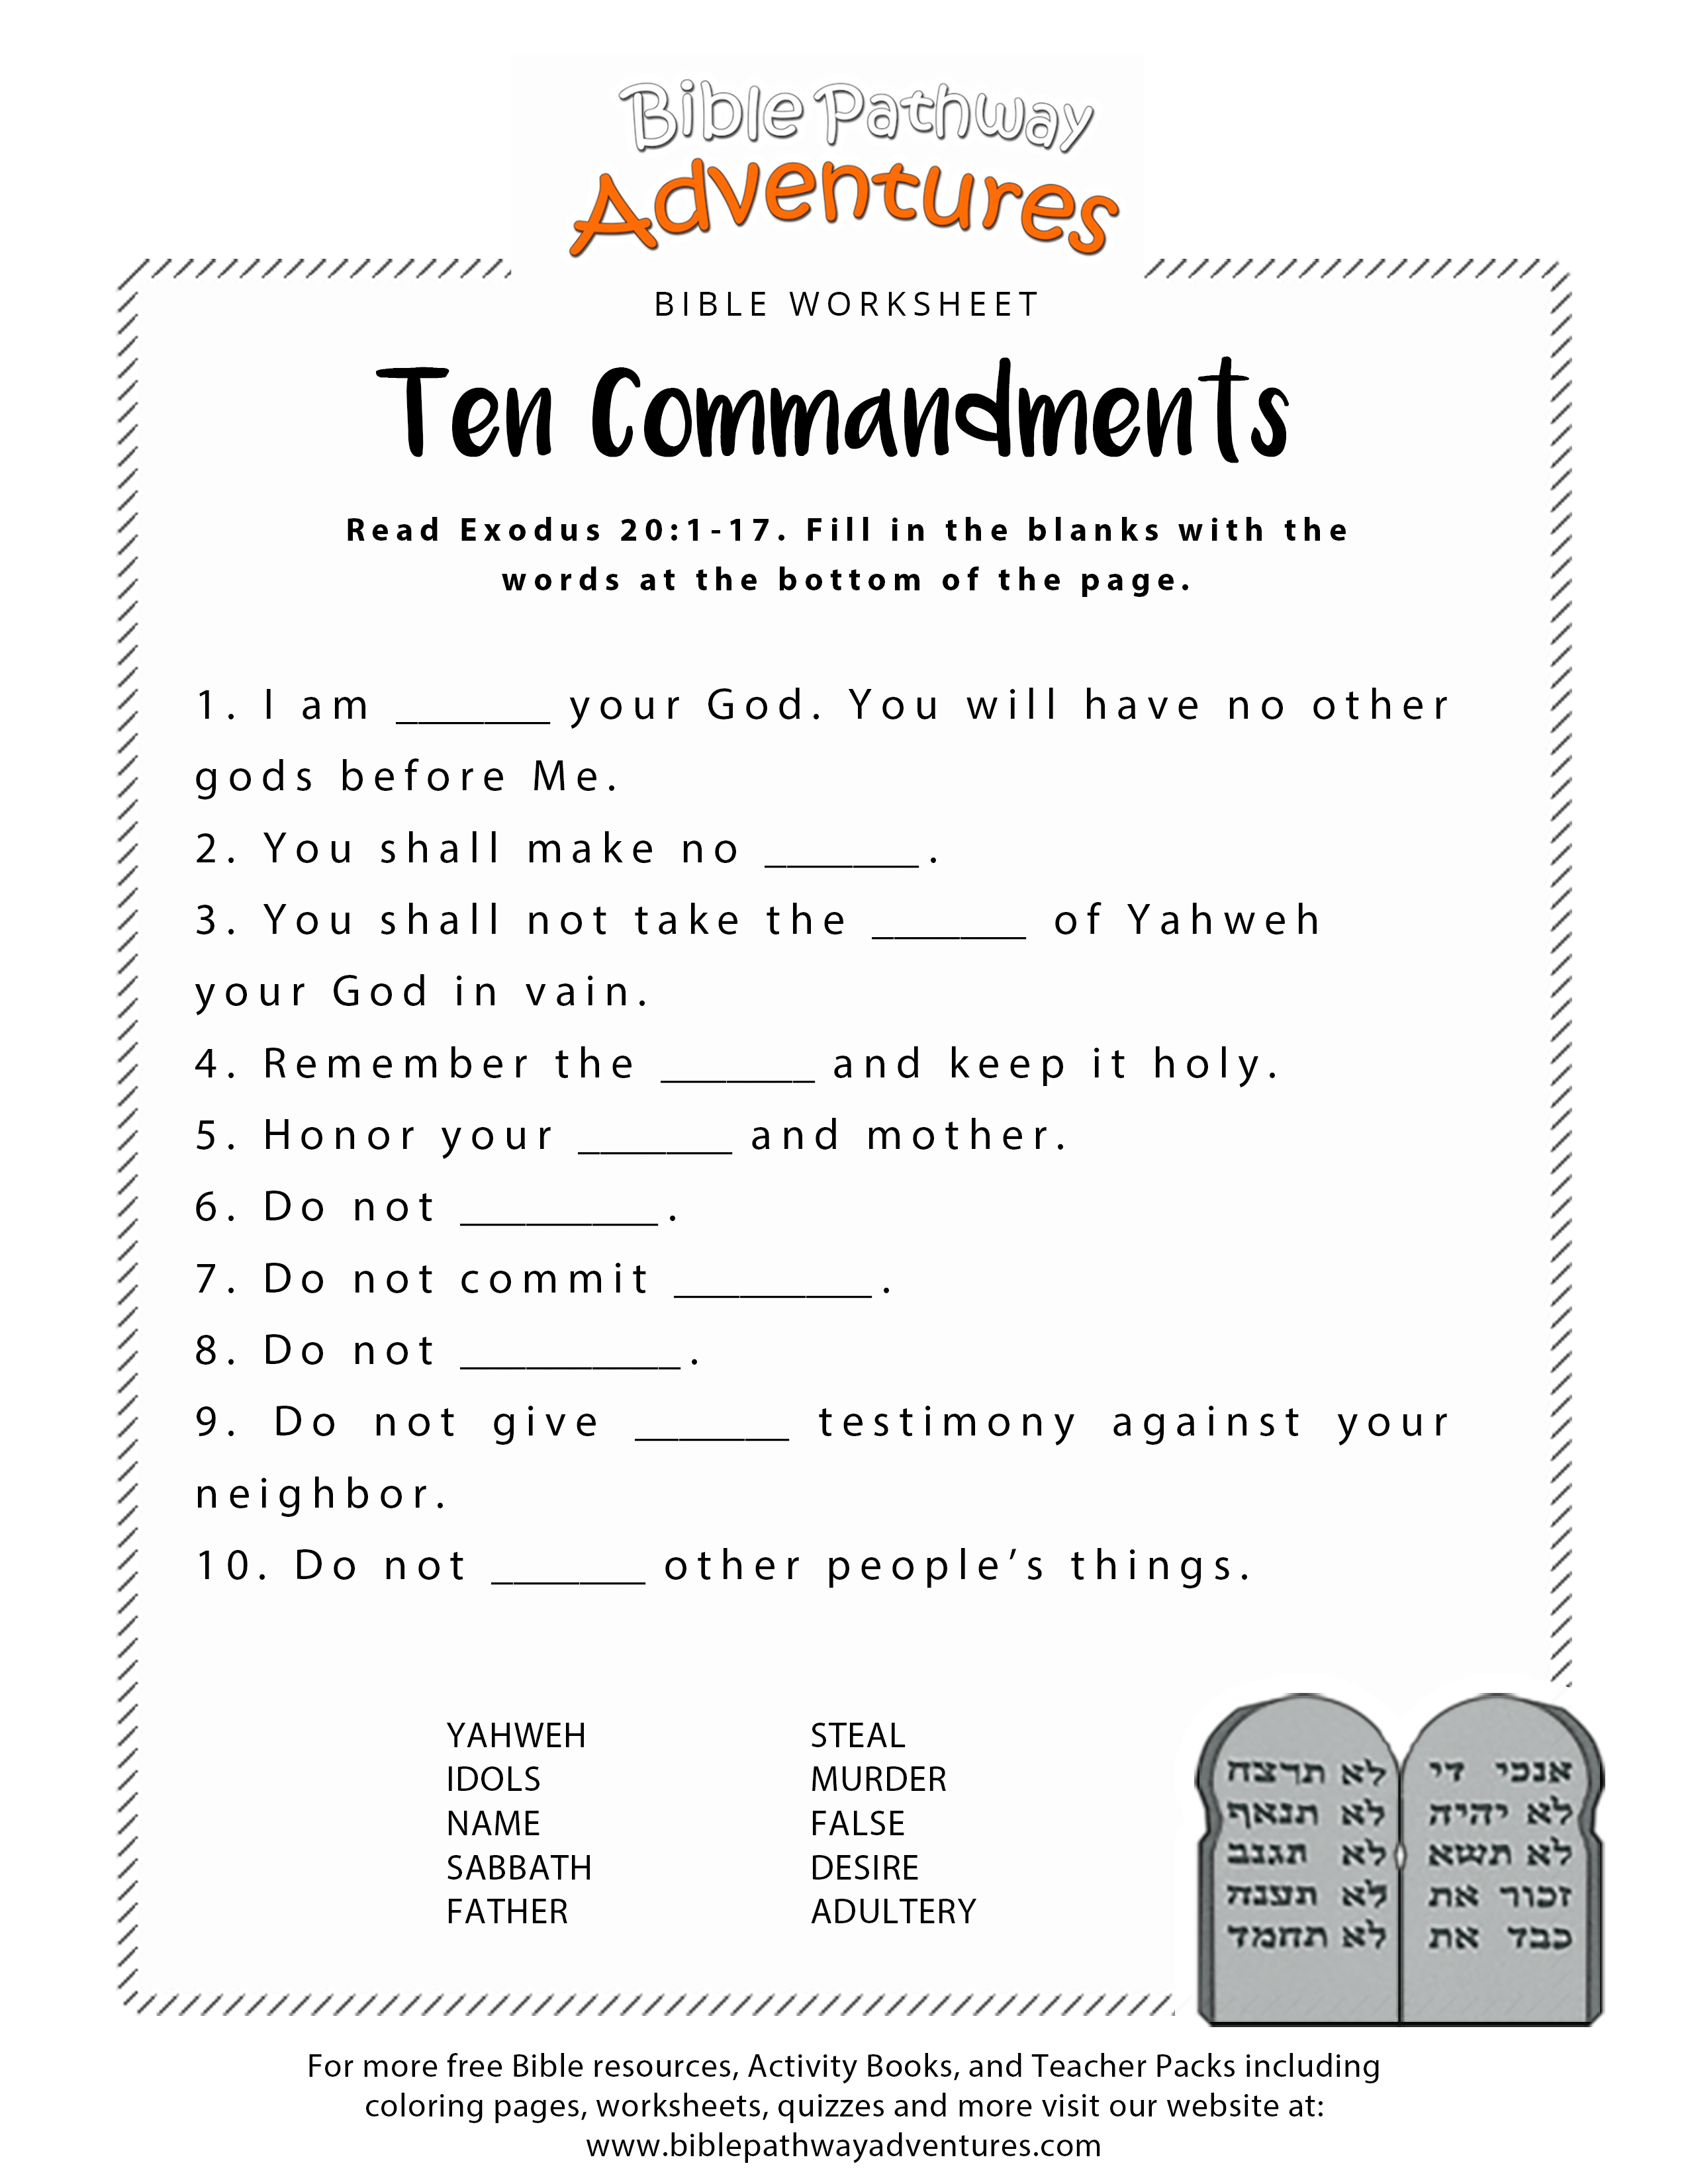 Ten Commandments Worksheet For Kids | Junior Church | Bible Lessons | Free Printable 5 W's Worksheets